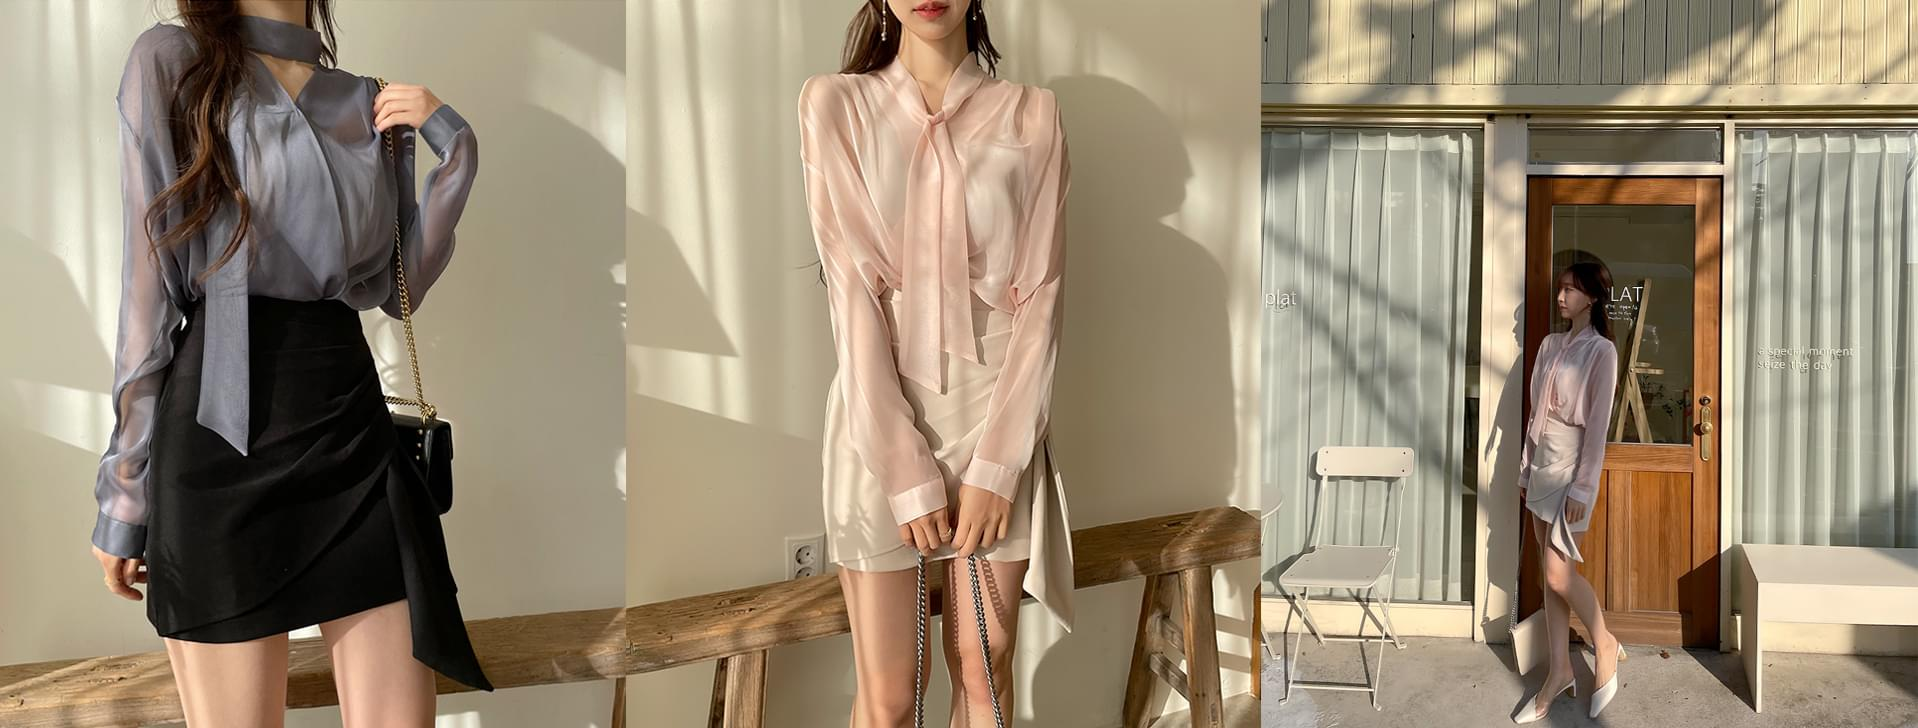 Volume see-through tie blouse 4color